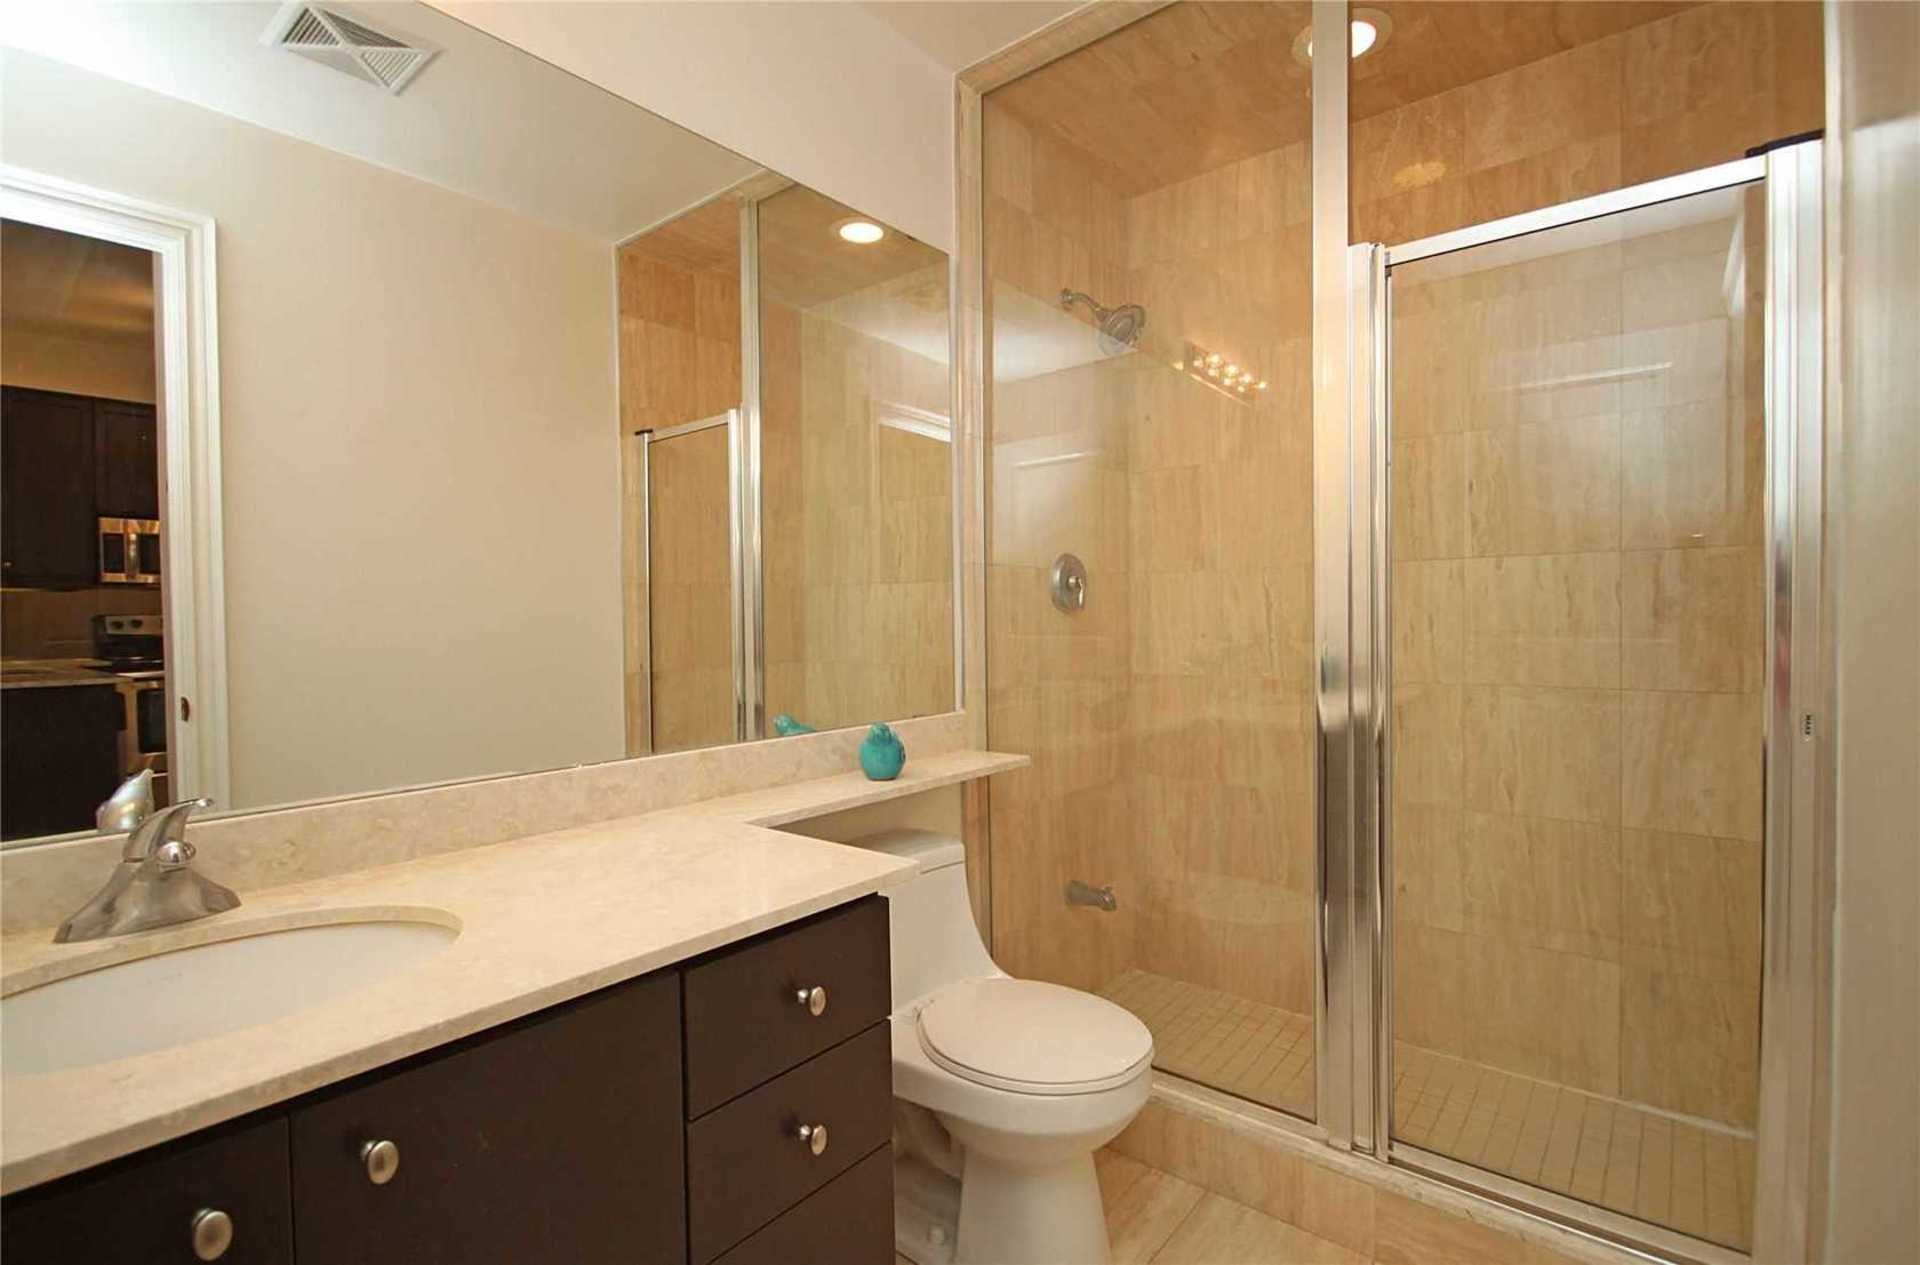 3 Piece Bathroom at 1209 - 10 Bloorview Place, Don Valley Village, Toronto